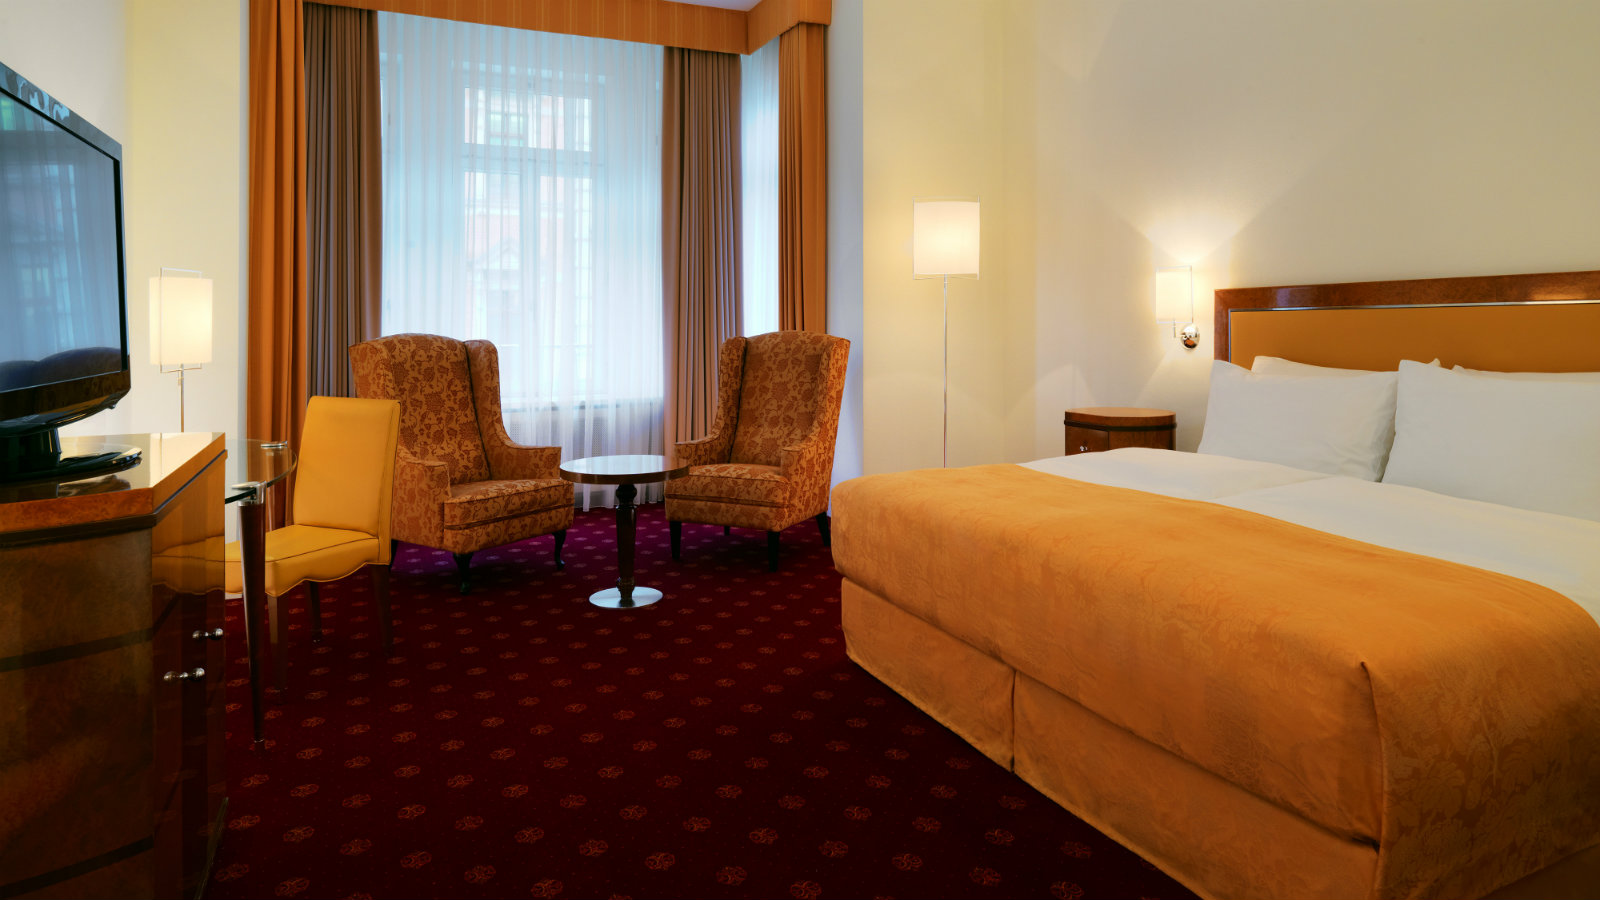 Grand Deluxe rooms at Hotel Fuerstenhof Leipzig